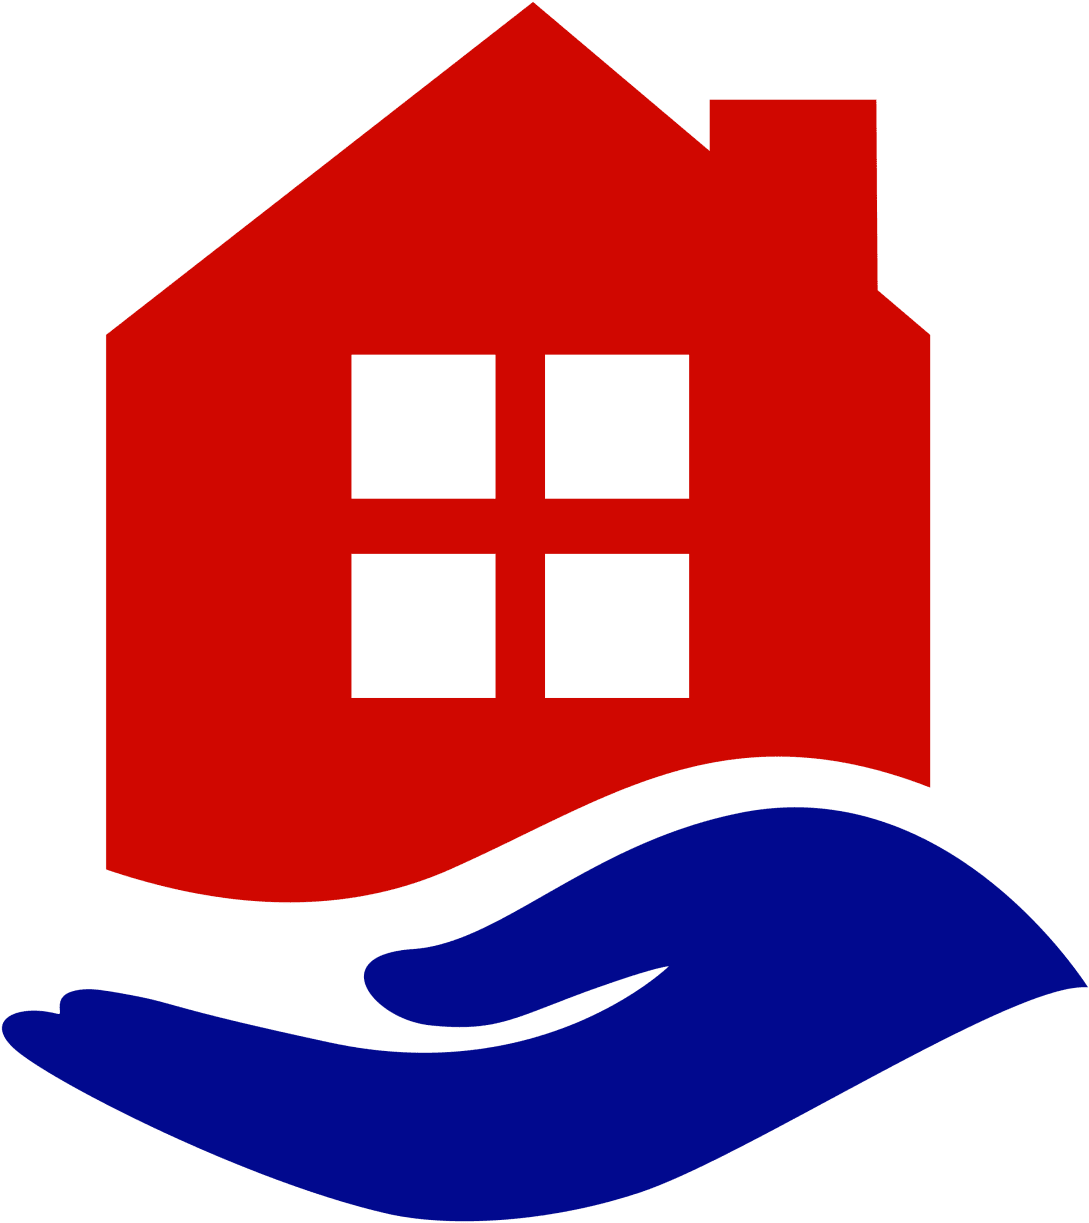 Home Team Realty Texas, Llc Clipart.